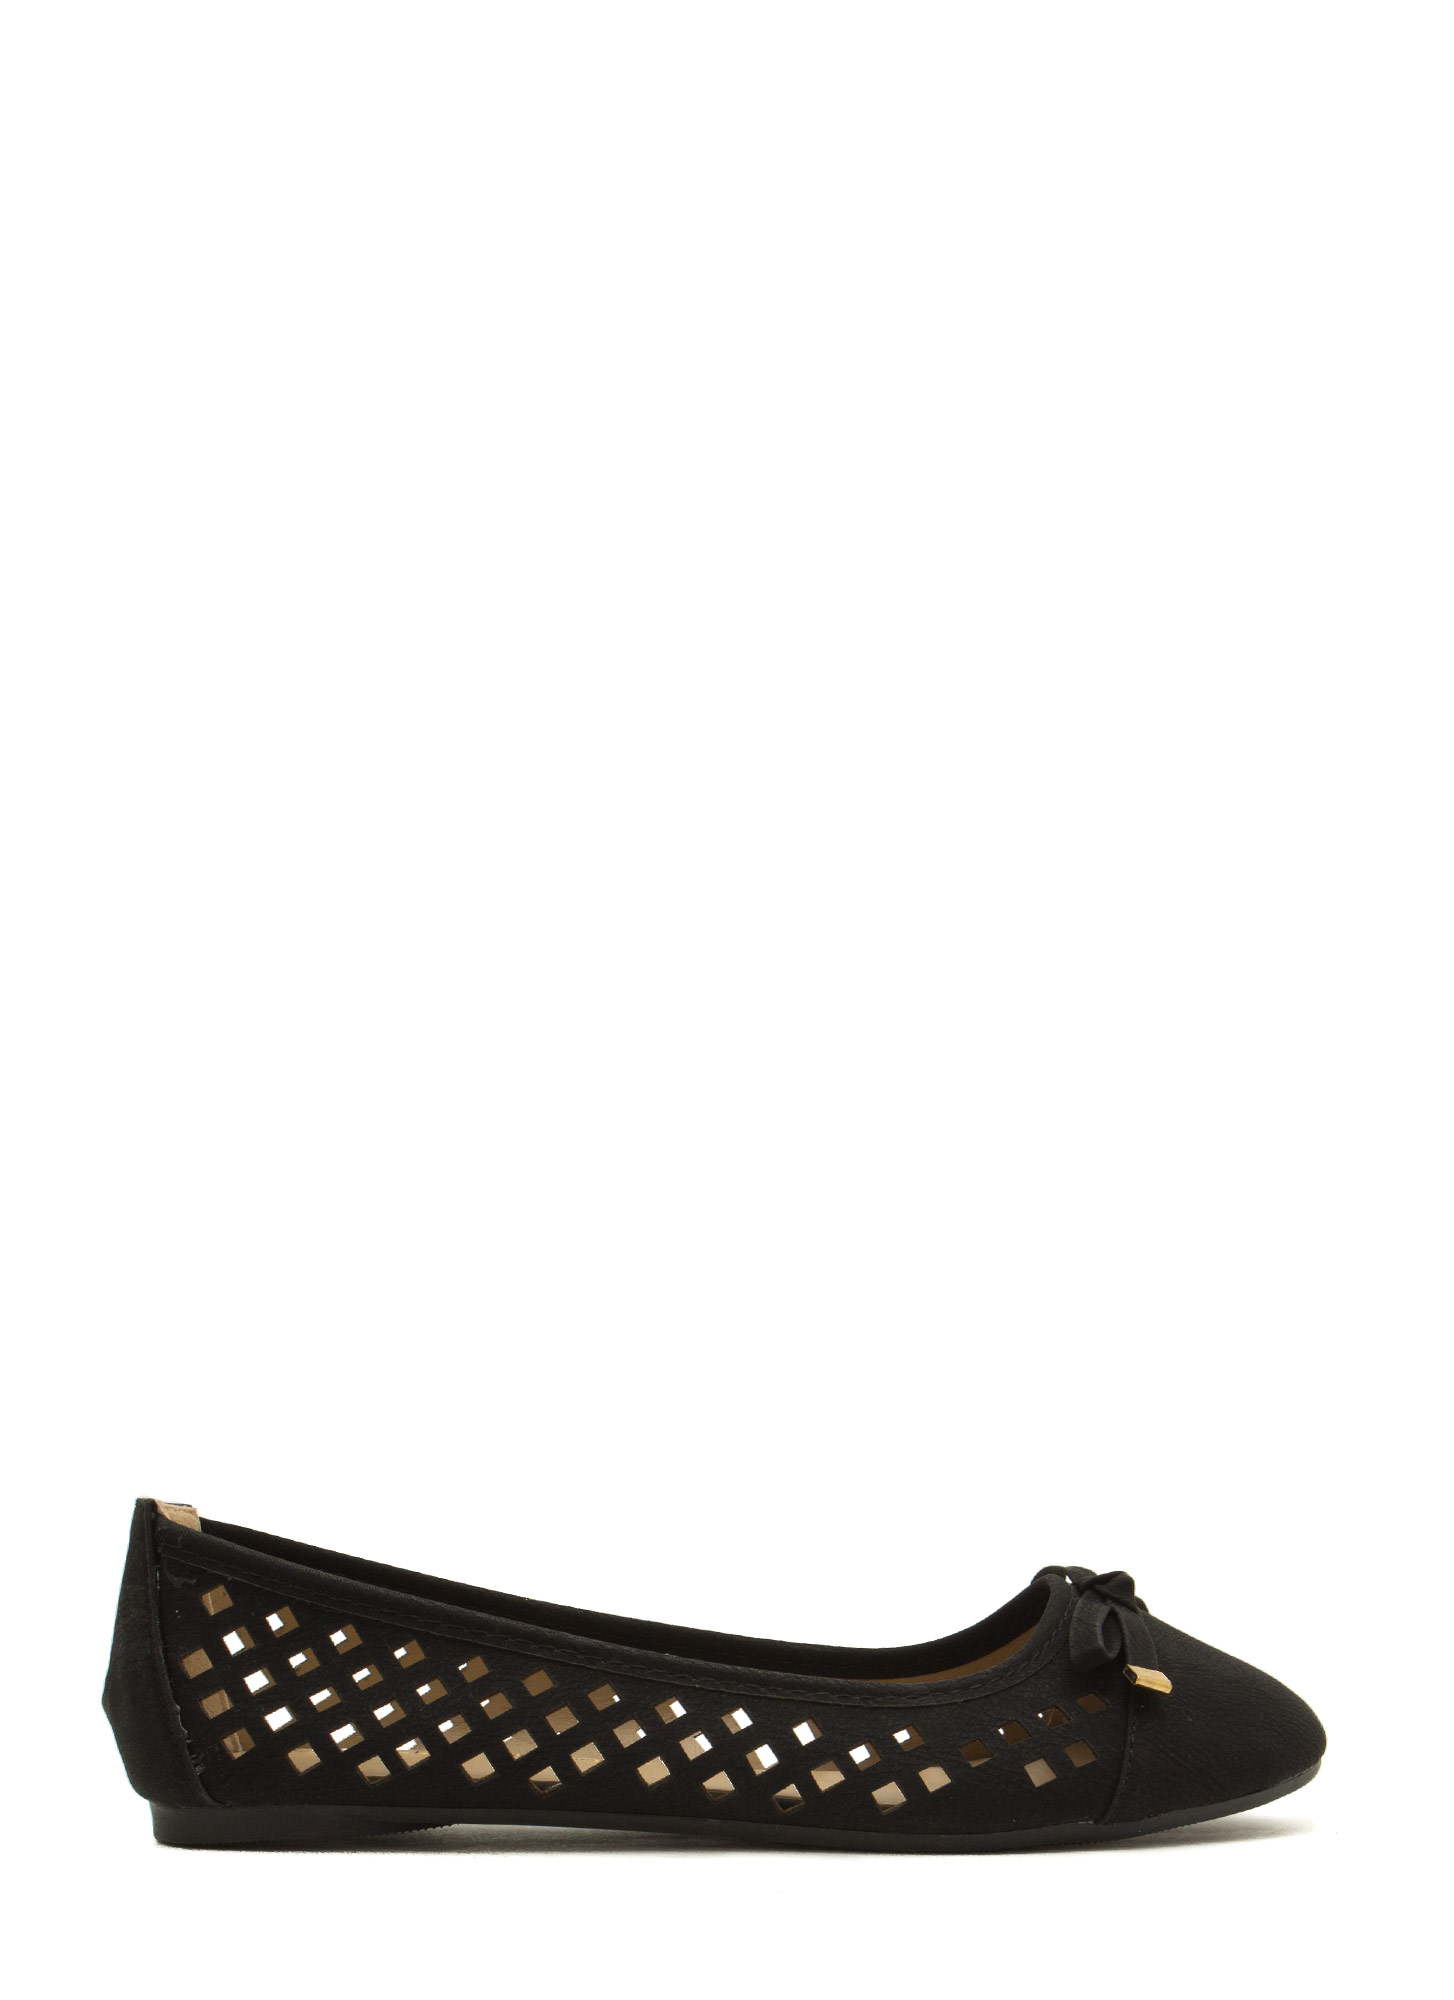 Feel My Pane Laser-Cut Bow Tied Flats BLACK